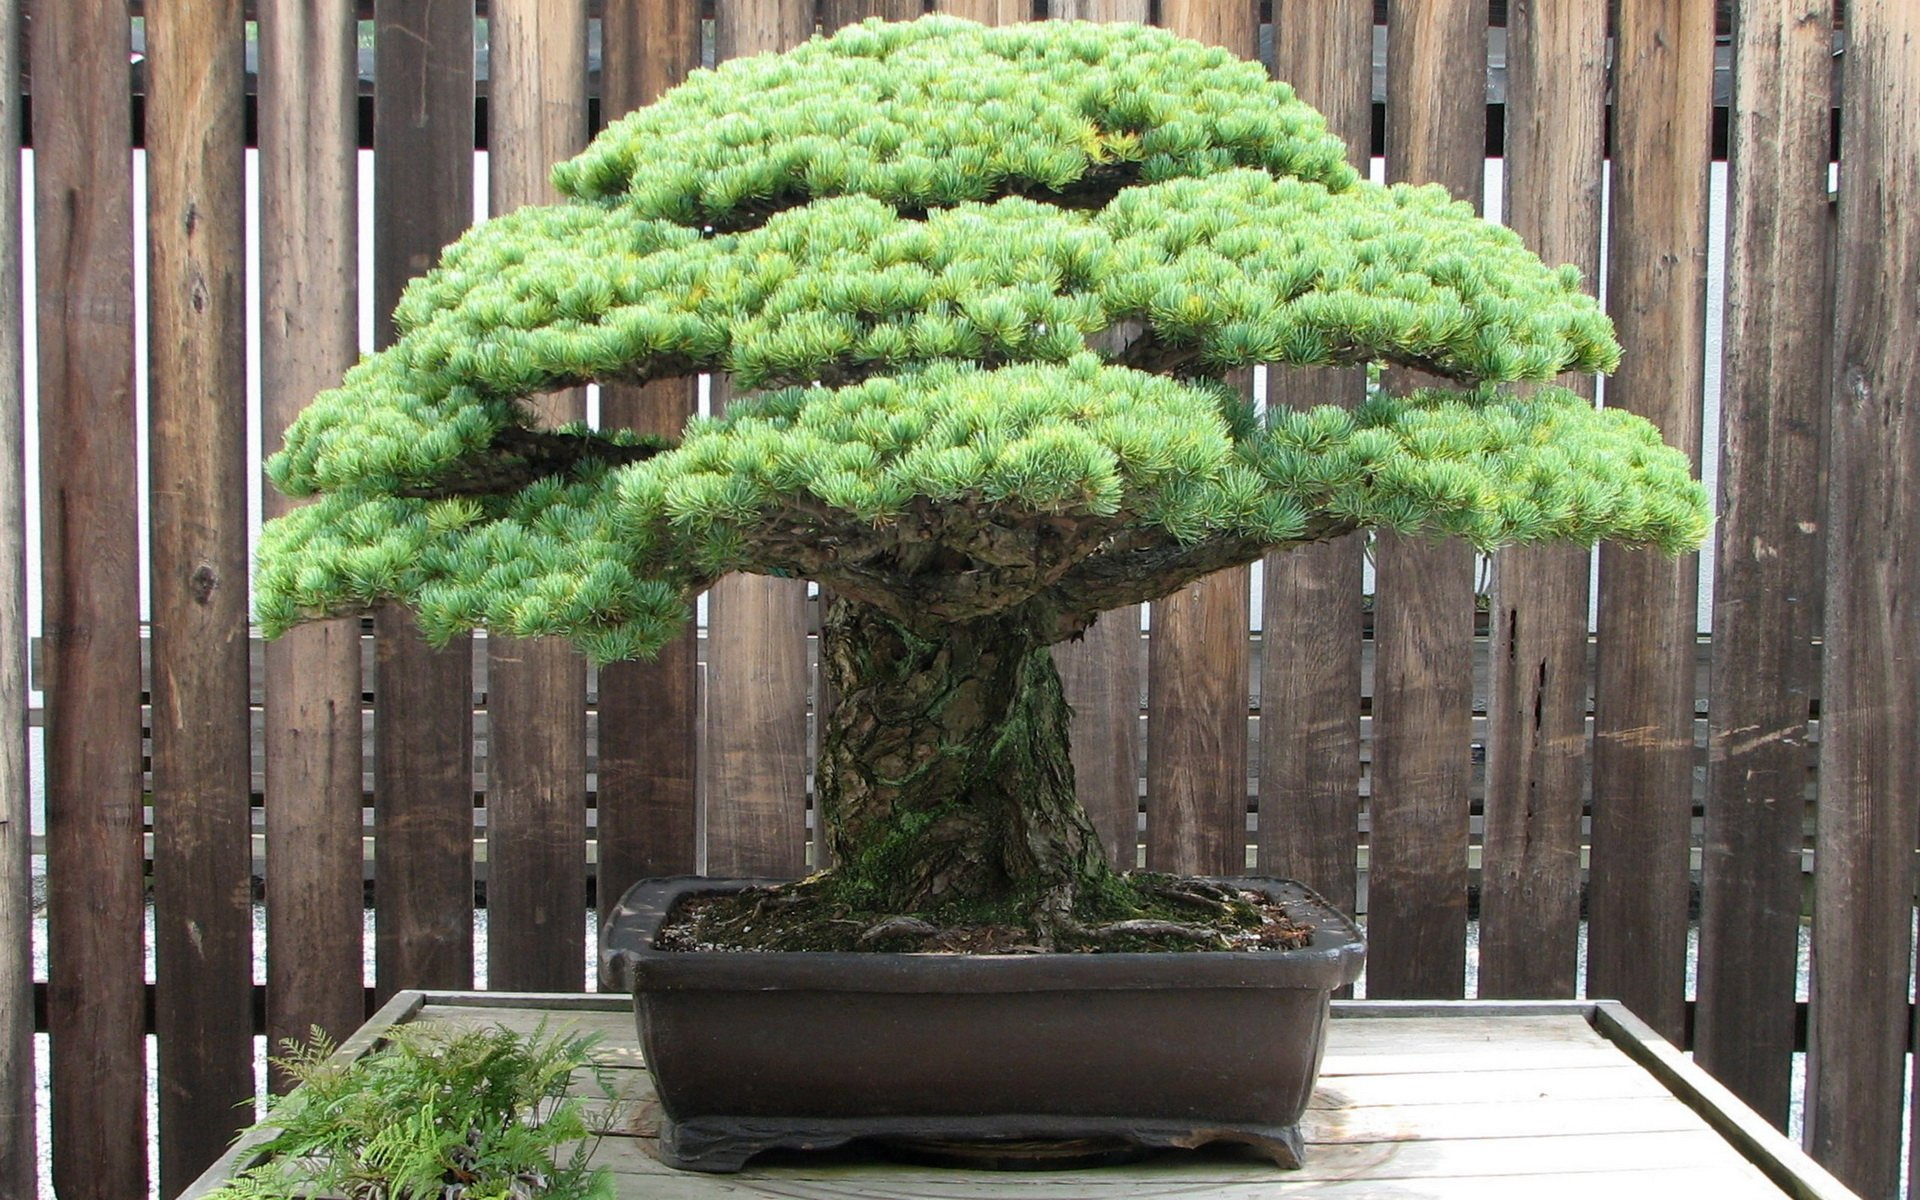 Bonsai Aarde Bonsai Hd Wallpaper Achtergrond 1920x1200 Id 430721